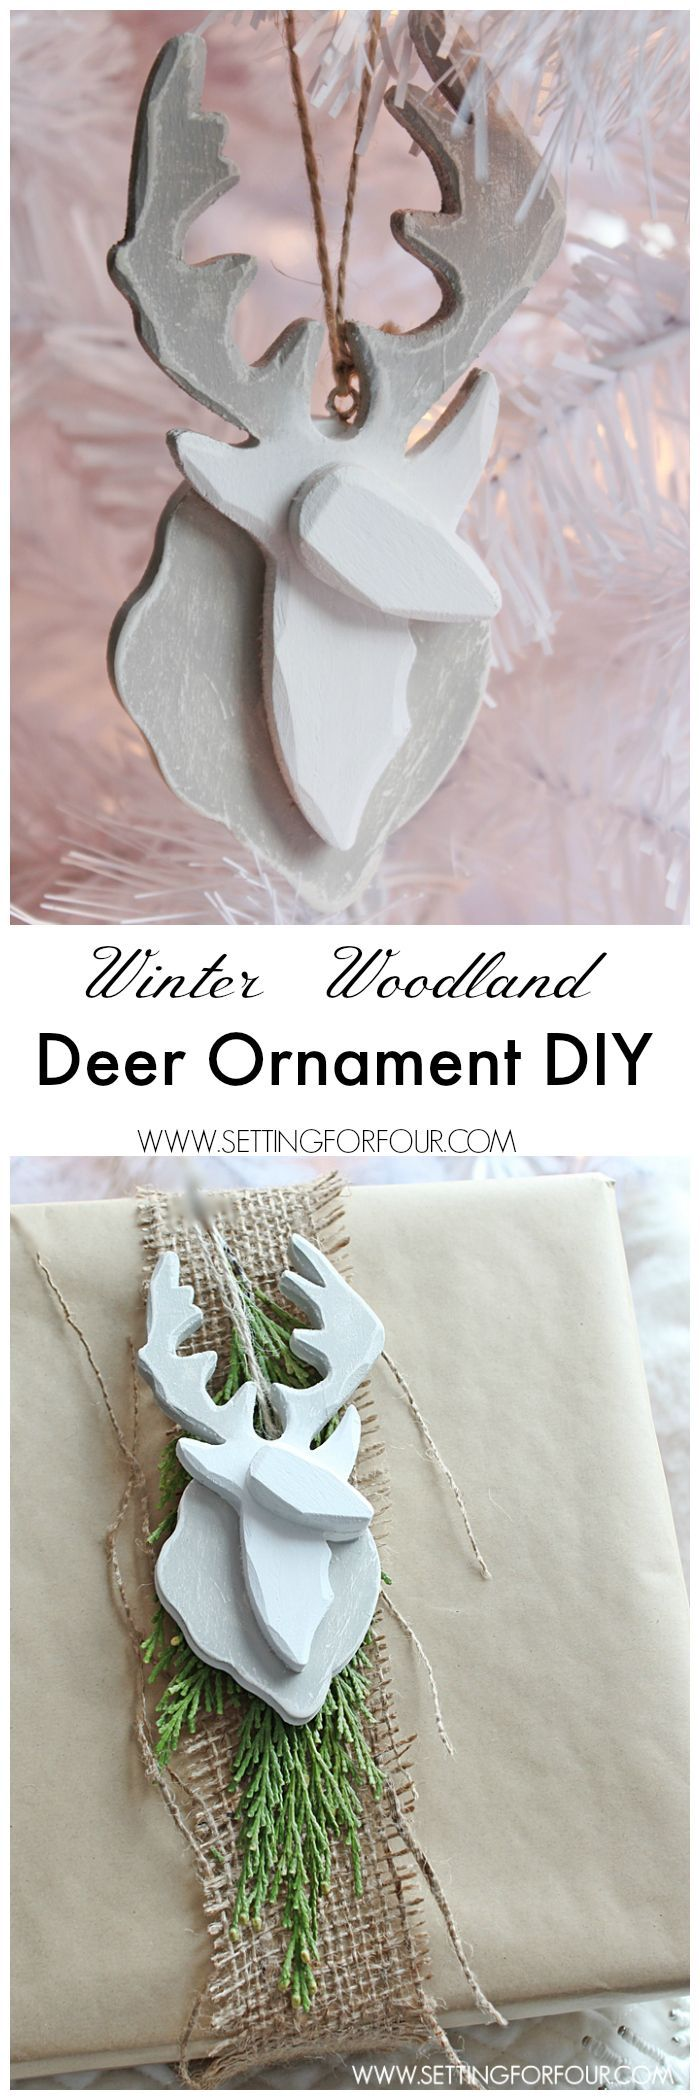 Easy painted Deer Ornament DIY inspired by a winter woodland look! This semi-handmade deer ornament is quick to make and a great tree ornament, stocking stuffer, teacher gift or present topper. http://www.settingforfour.com